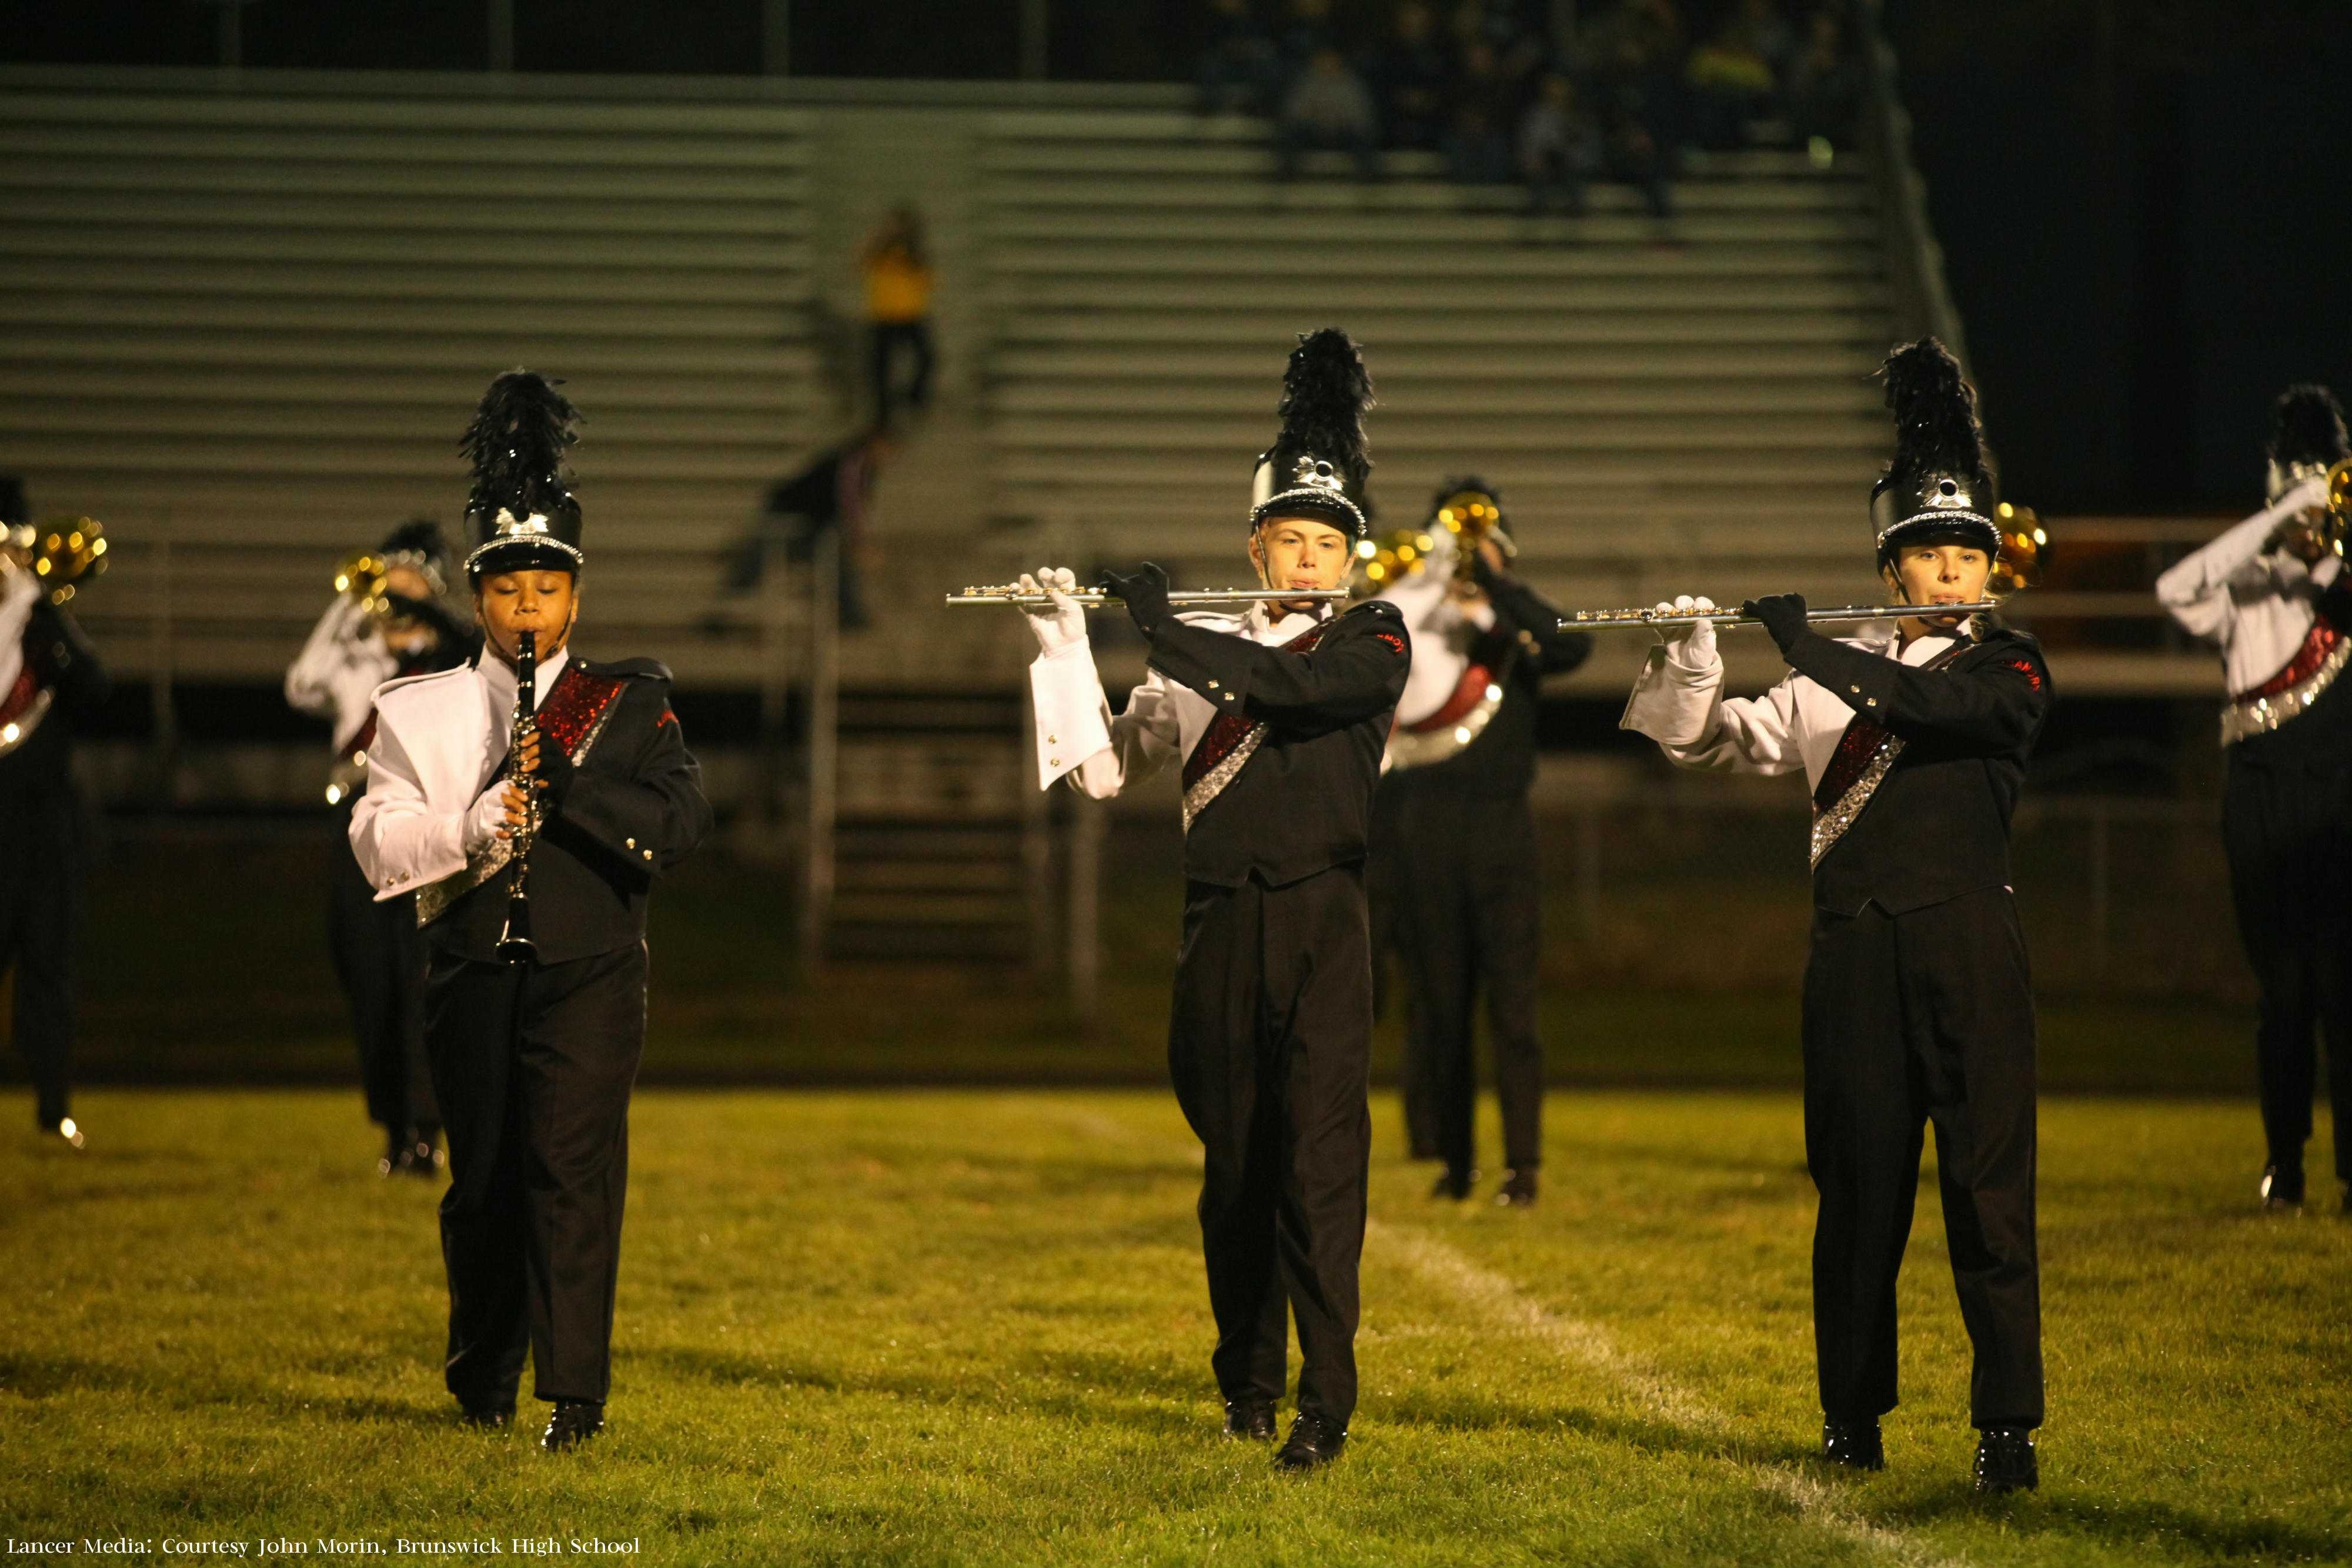 Breanna Wade, Kieth Kurtz, and Rebecca Yates march in the FCPS marching festival. Photo courtesy of John Morin, Brunswick High School